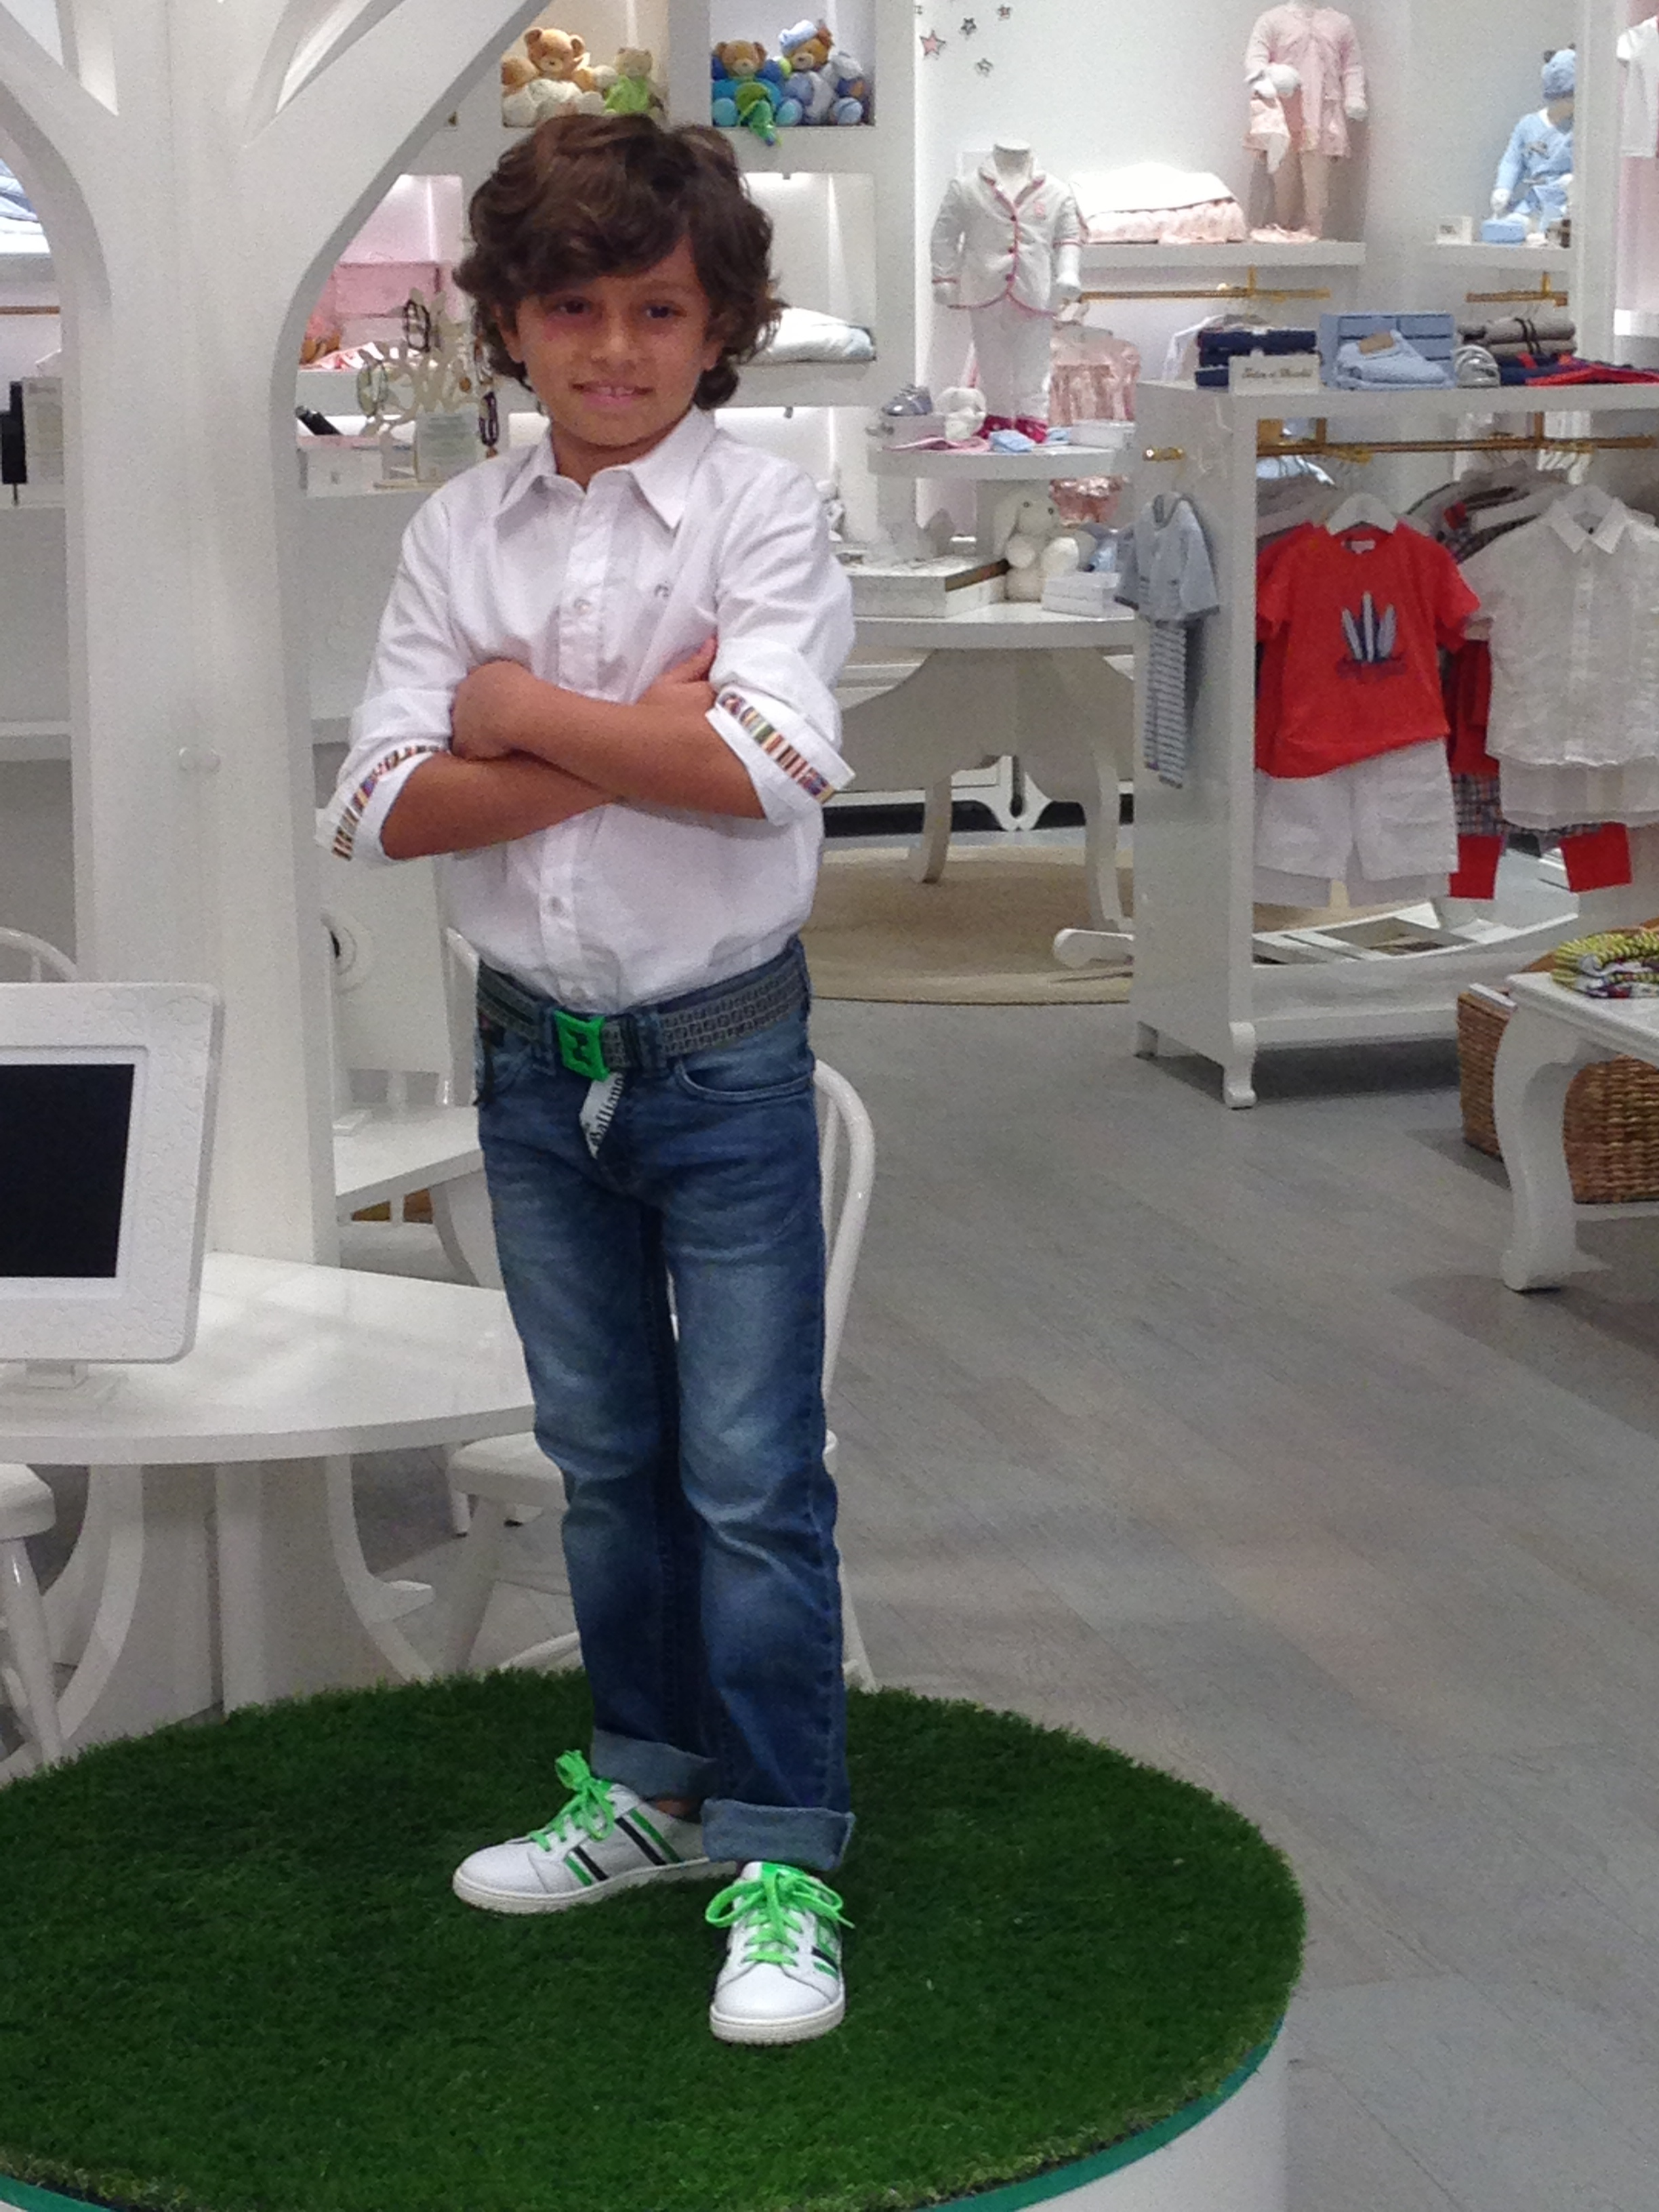 katakeet Dubai kids styling  and fashion show5.jpg